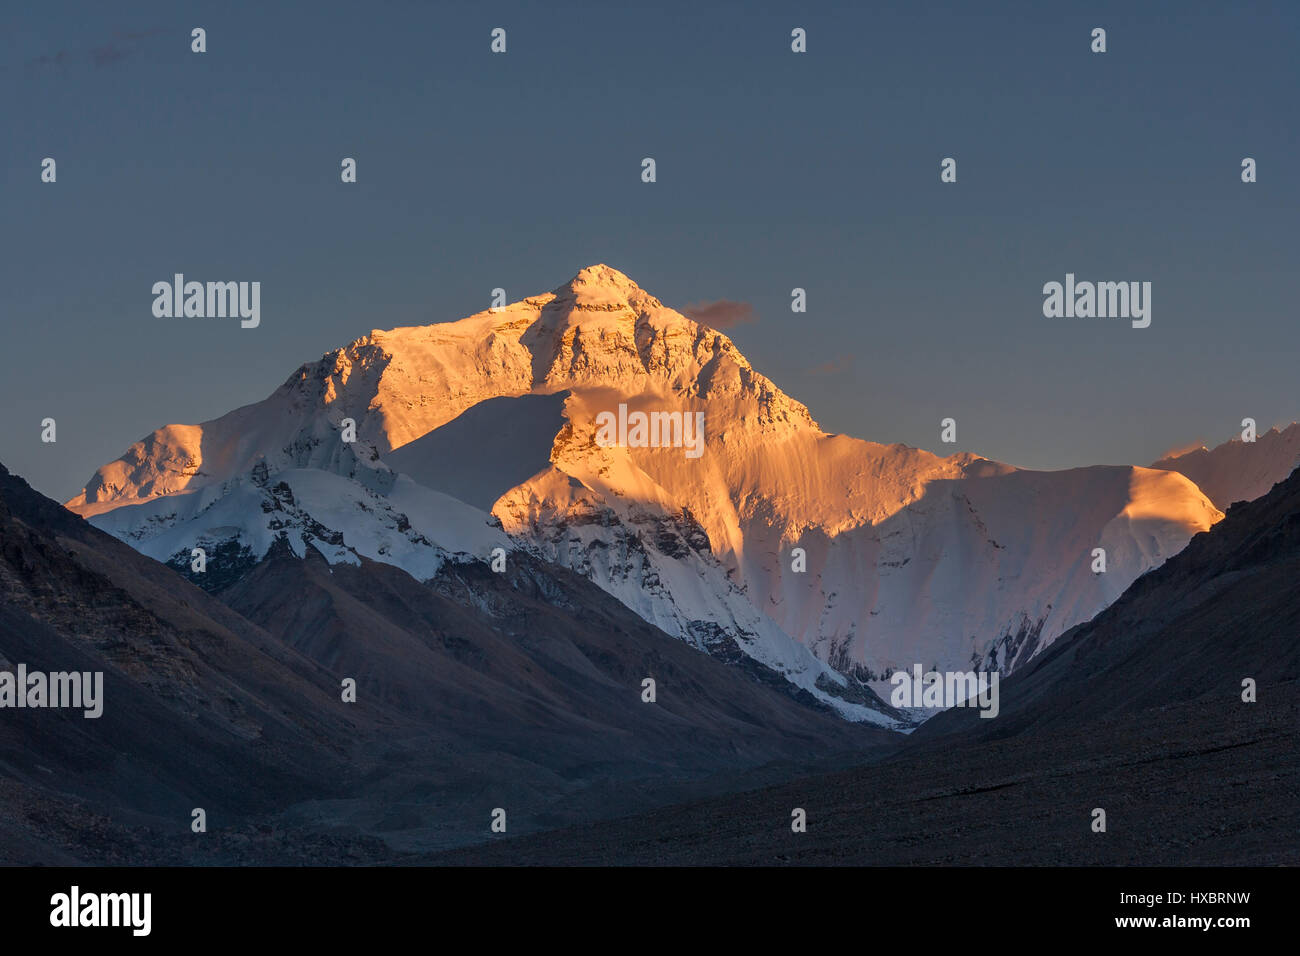 Evening golden light on the north face of the Mount Everest - Stock Image